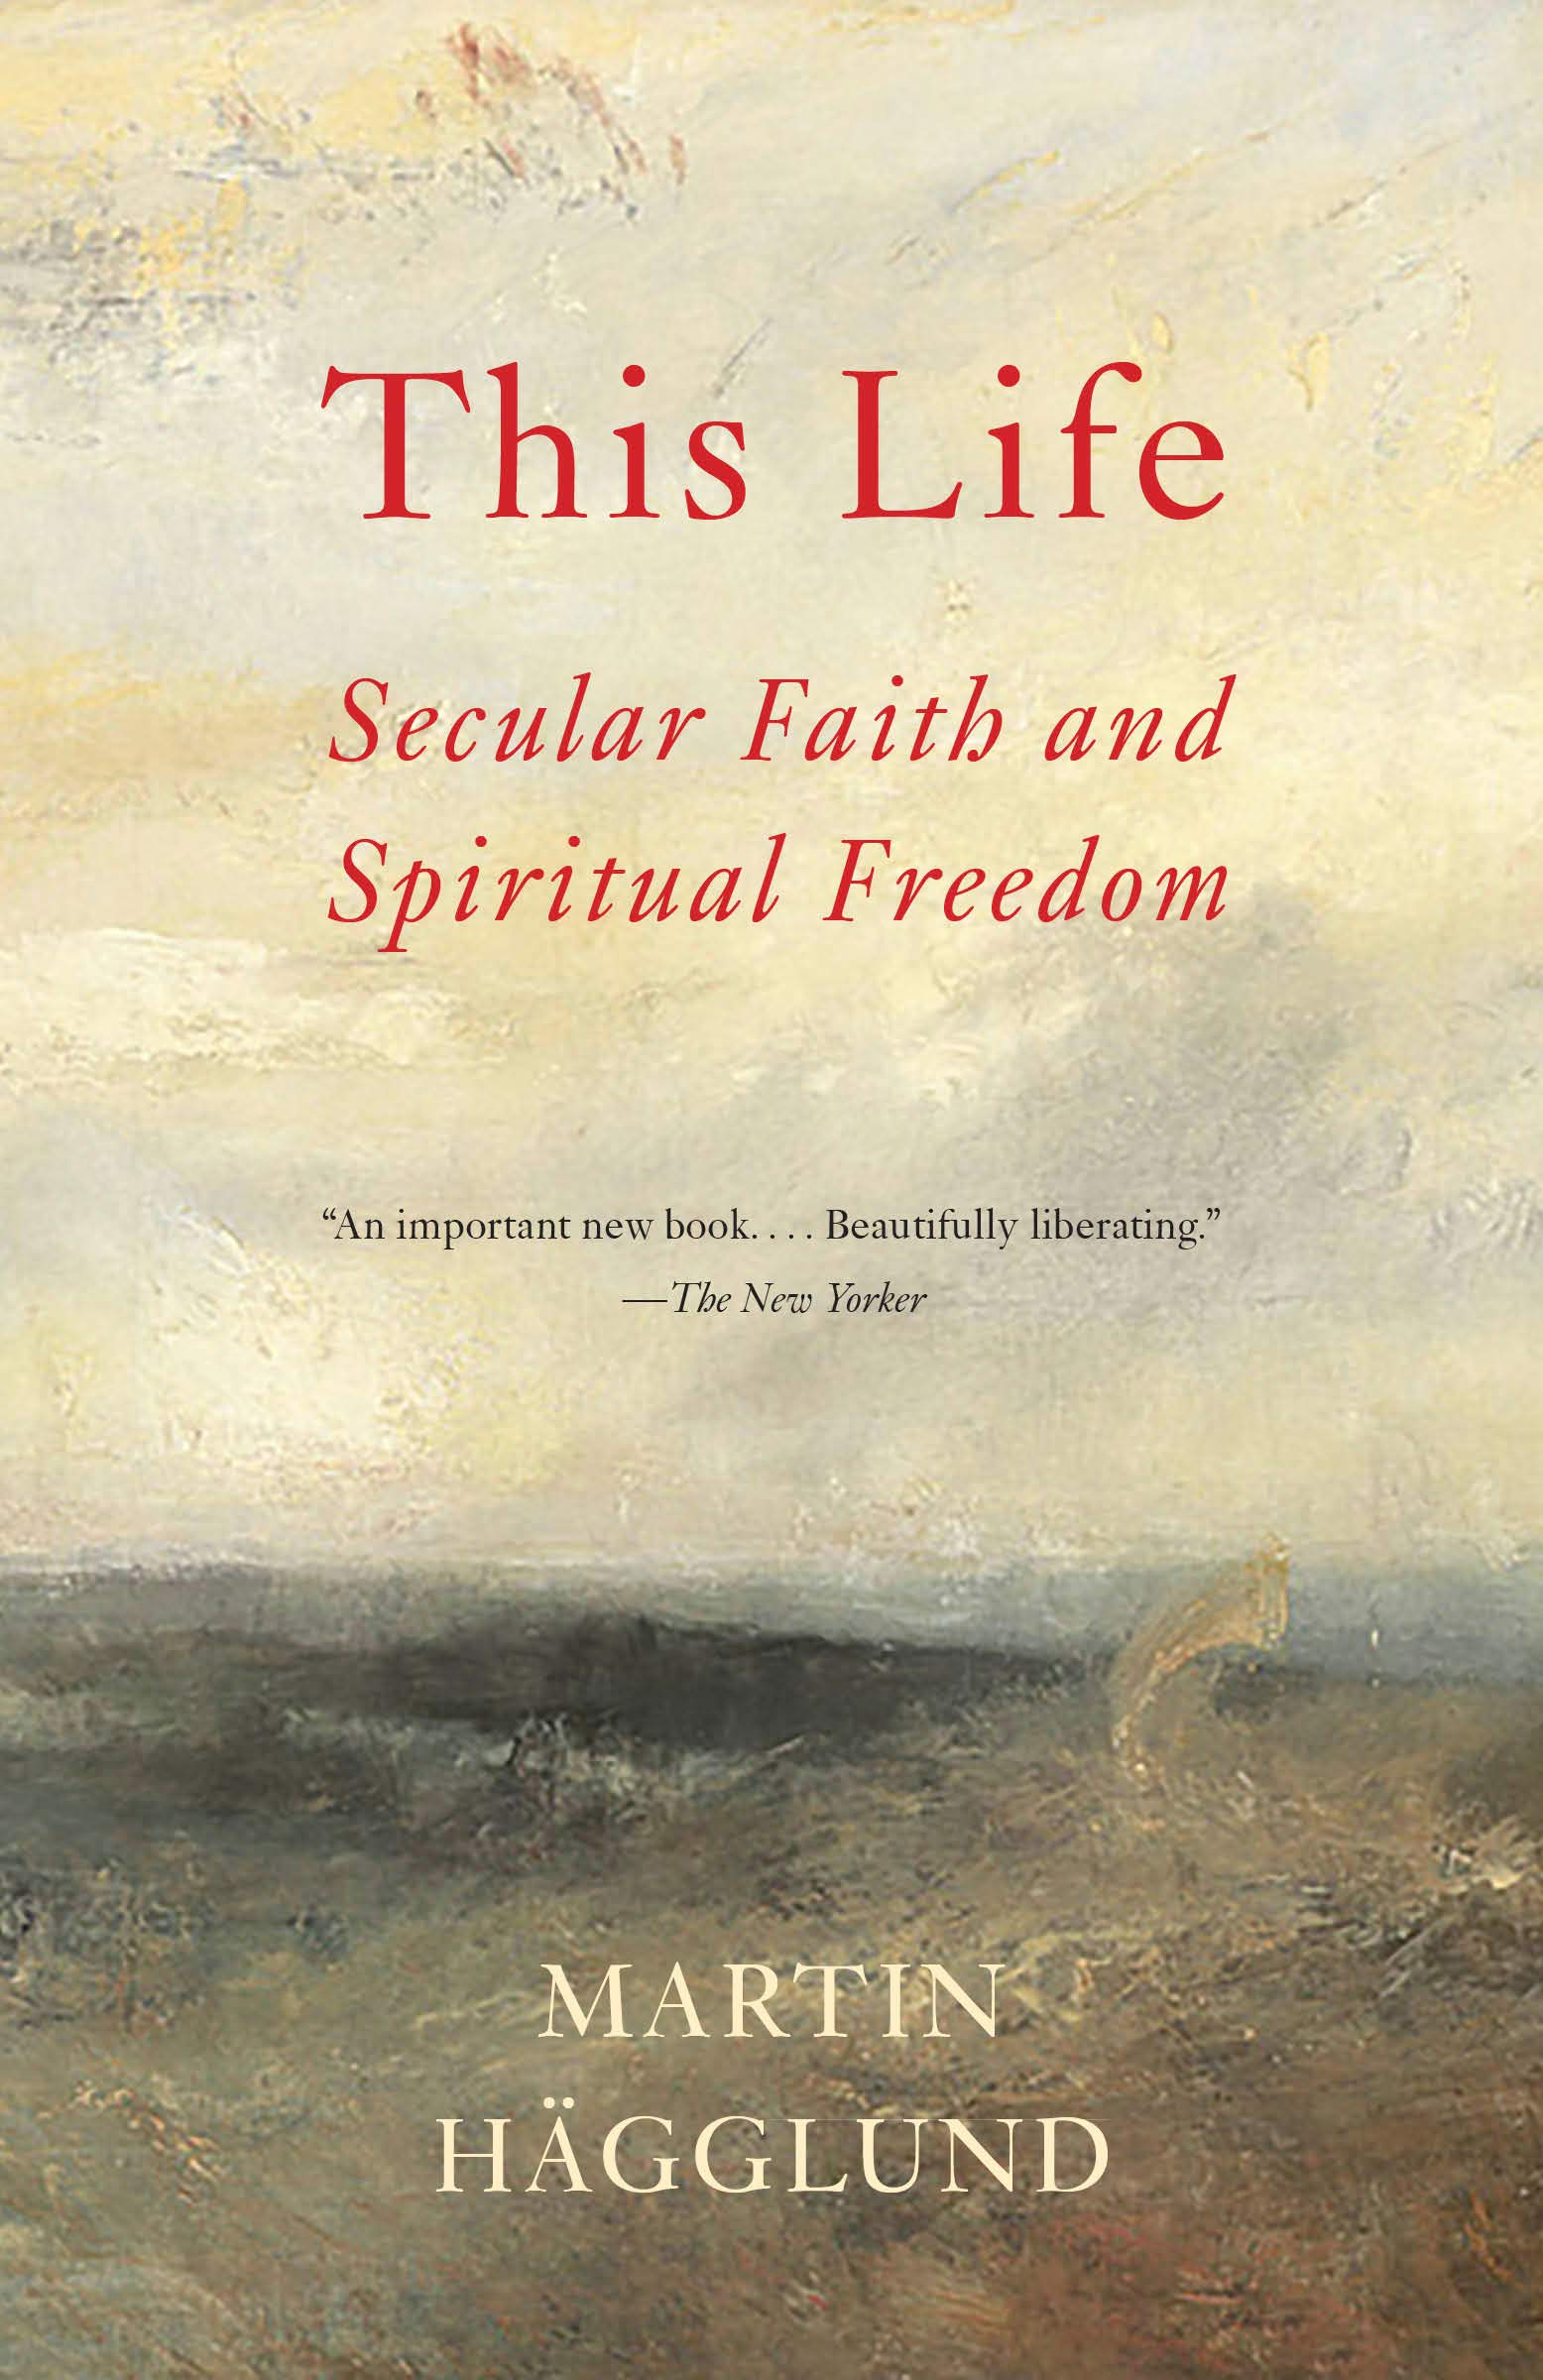 Image OfThis Life: Secular Faith And Spiritual Freedom